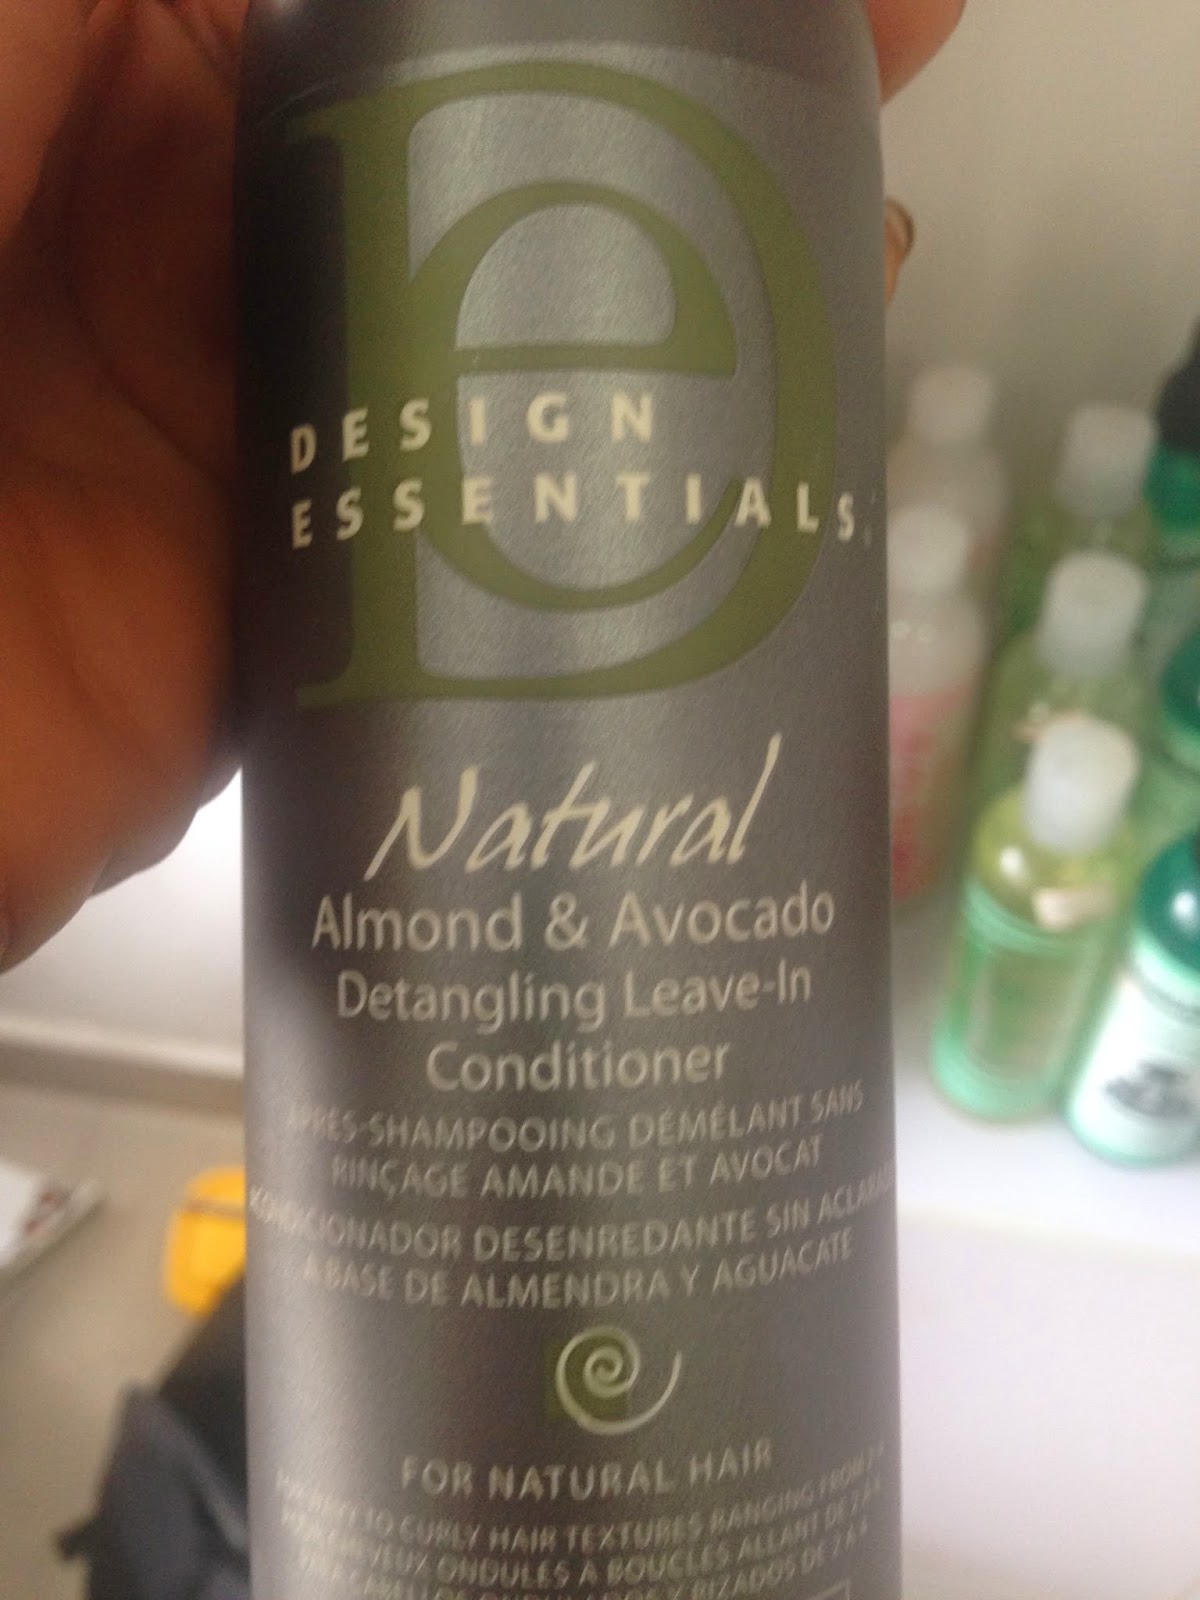 Design Essentials Almond And Avocado Leave In Somurichcom